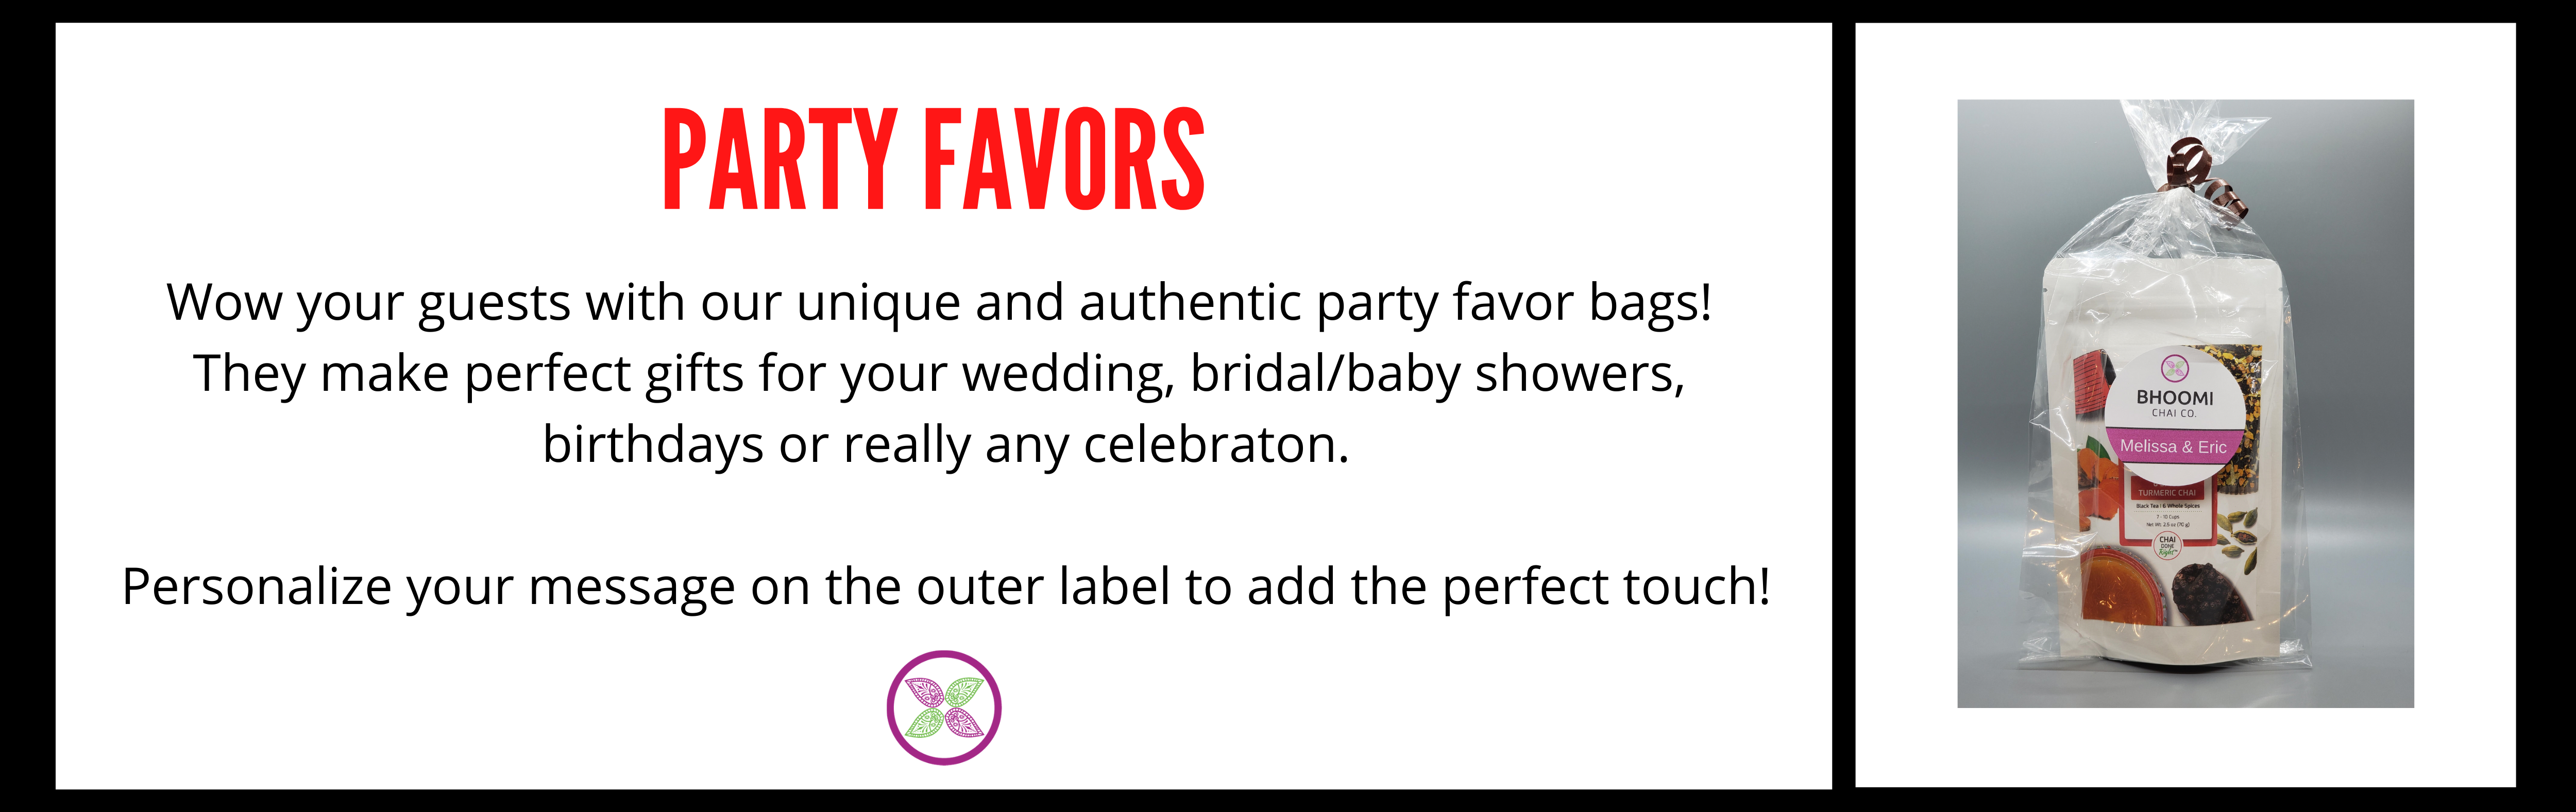 party-favors.png